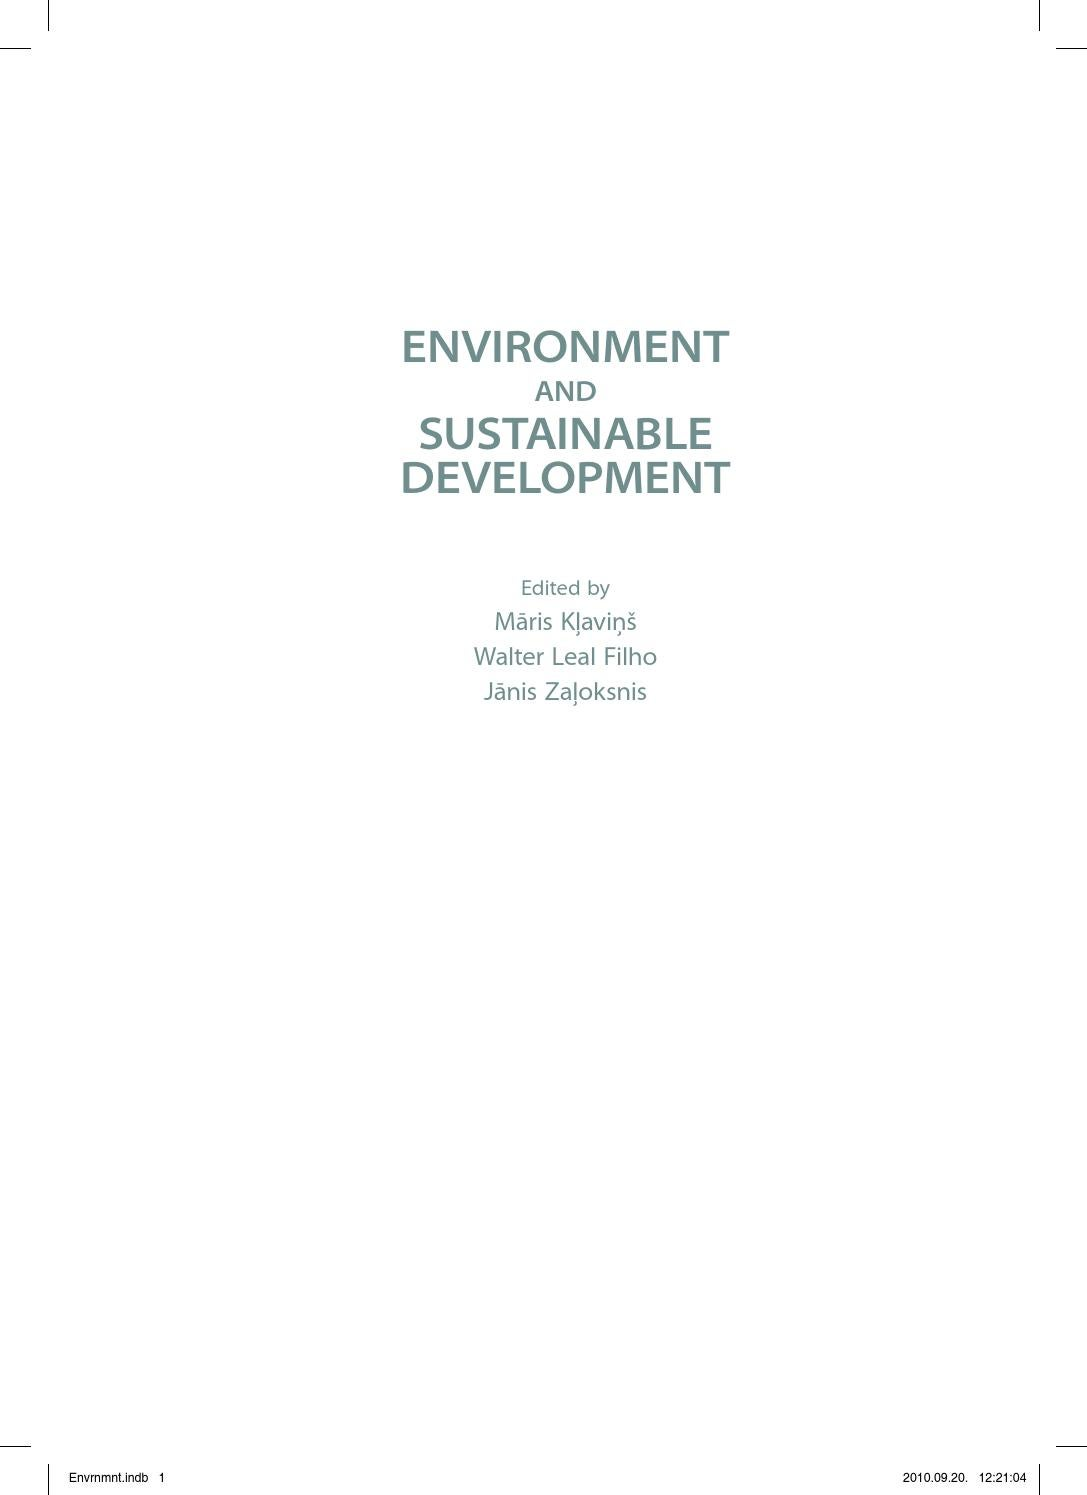 ENVIRONMENT AND SUSTAINABLE DEVELOPMENT by Janis Brizga - issuu